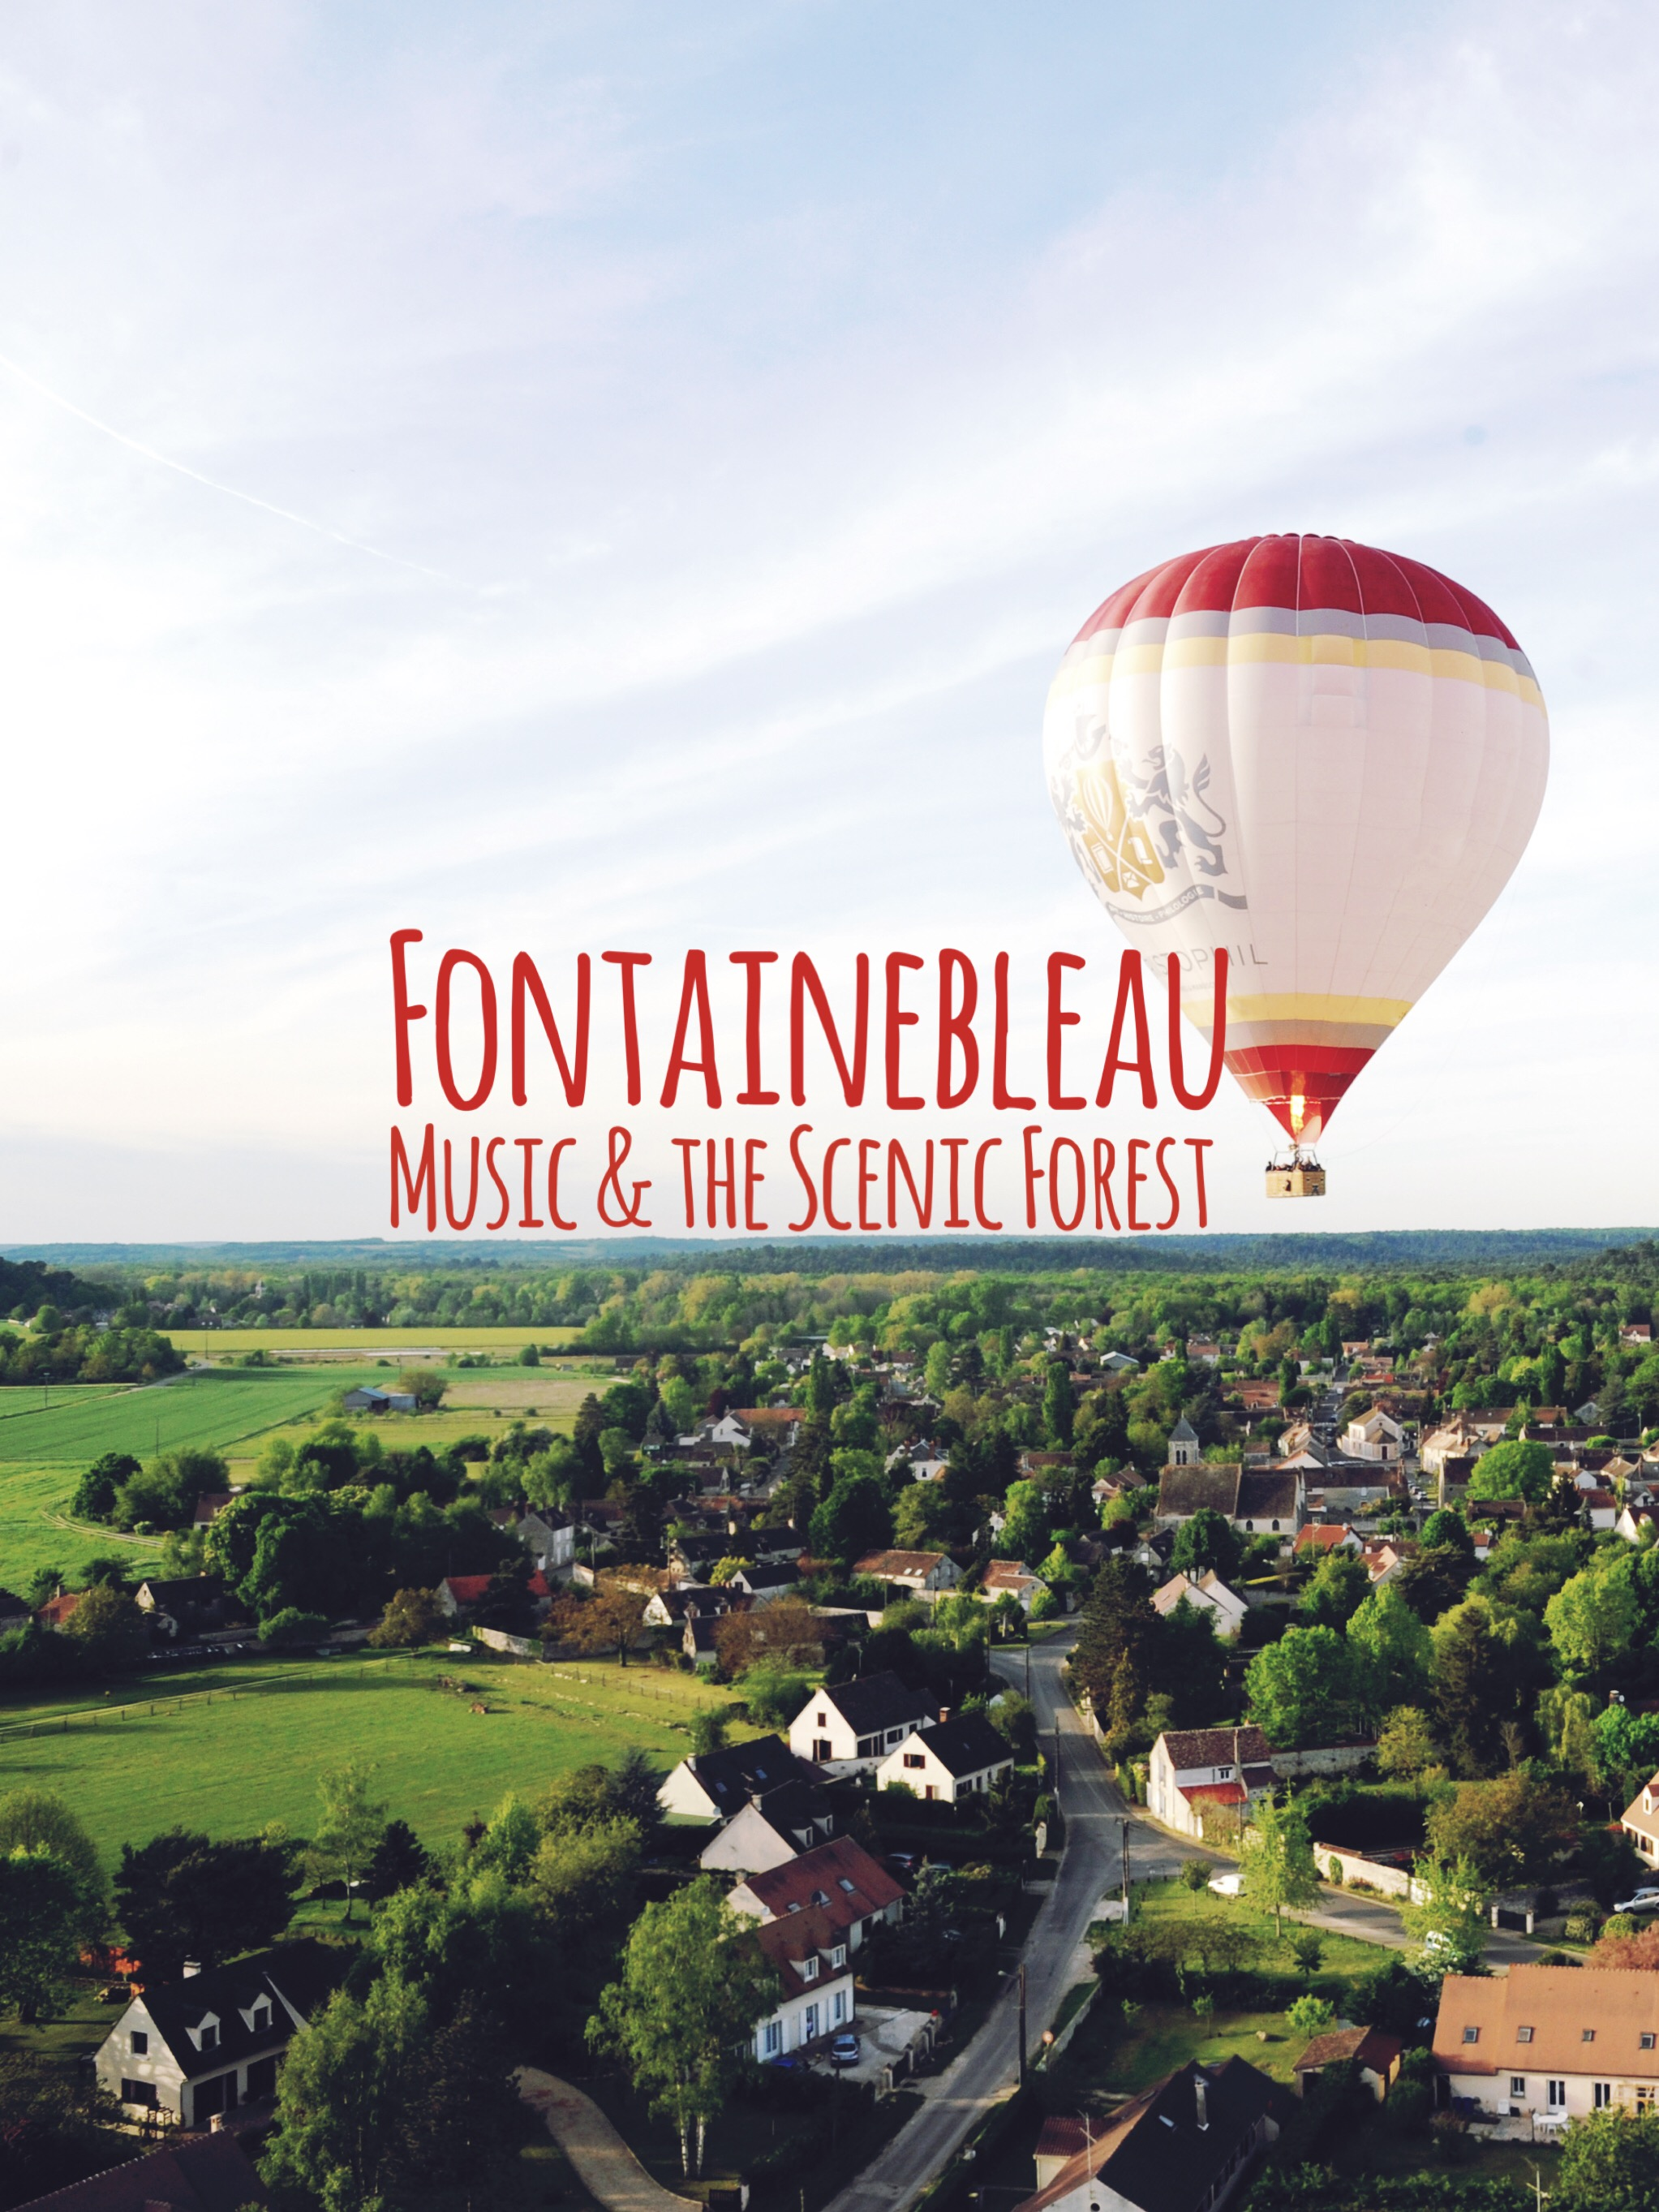 A Recommended Summer Day Trip to Fontainebleau: Forest Balloon Ride and Music Festival